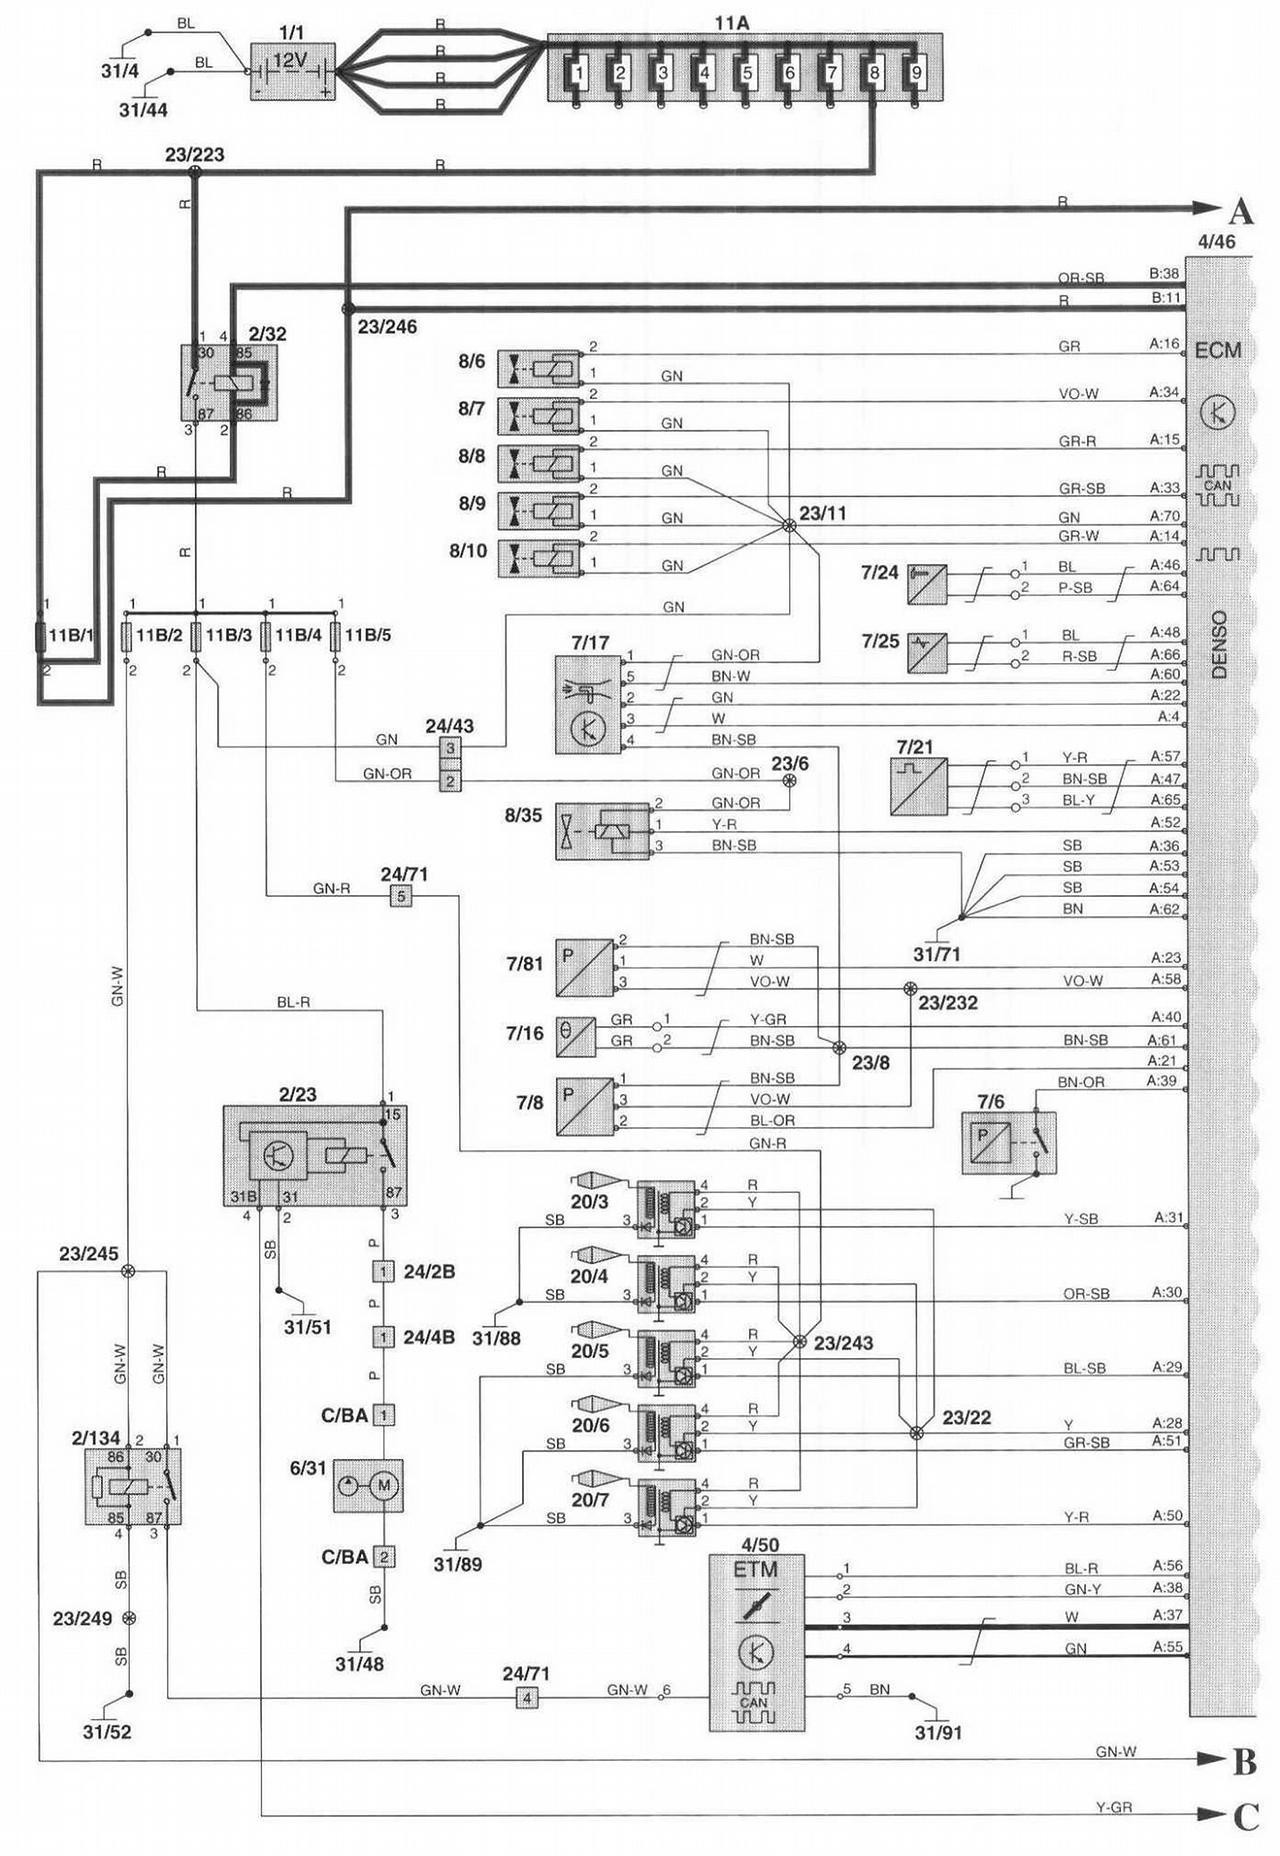 1998 Volvo V70 Engine Diagram Volvo Wiring Diagram Wiring Schematic Diagram Of 1998 Volvo V70 Engine Diagram S80